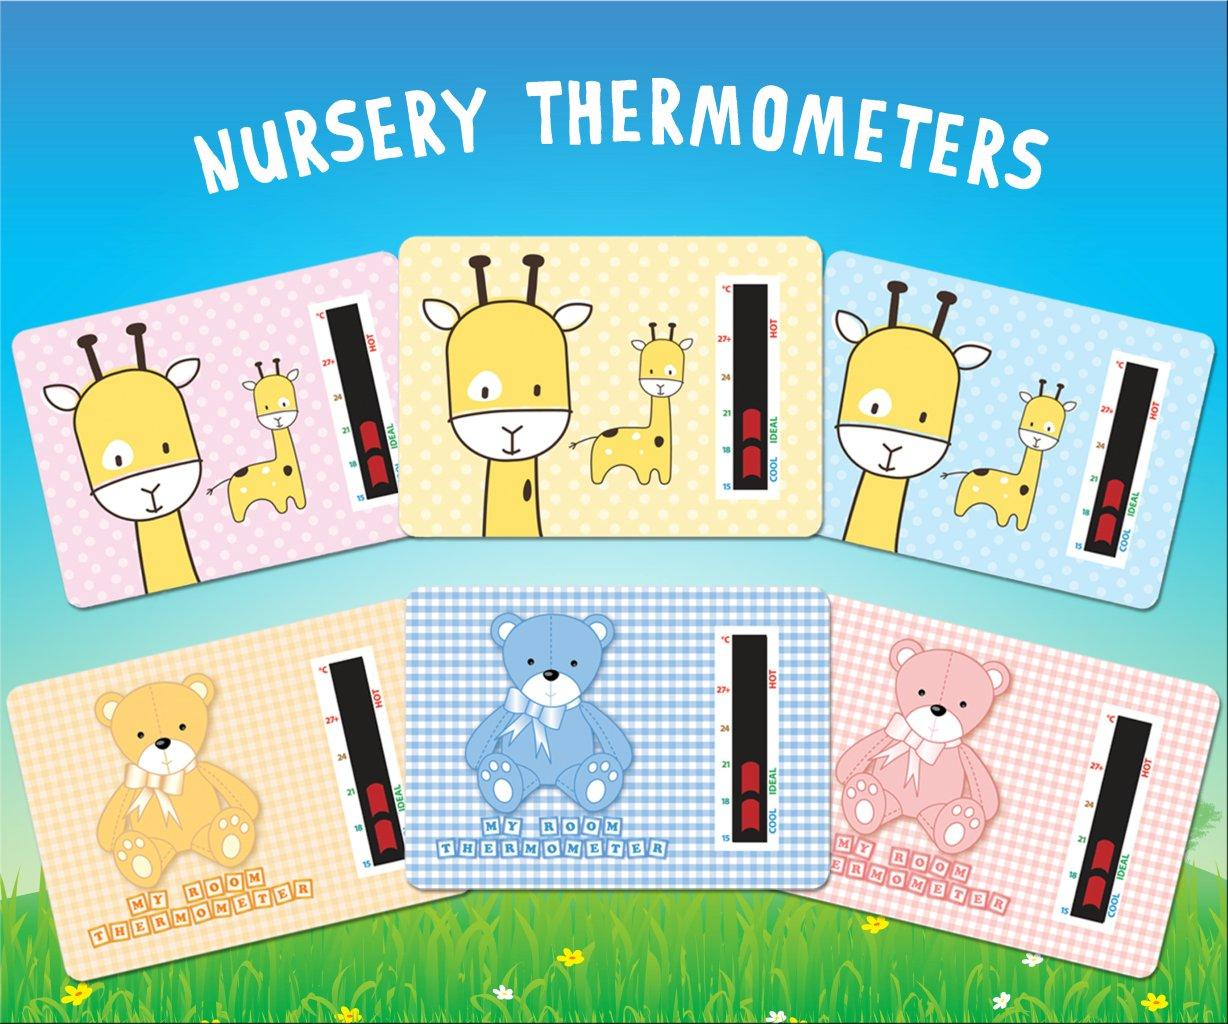 Moving Line Baby Room Thermometers now in stock.